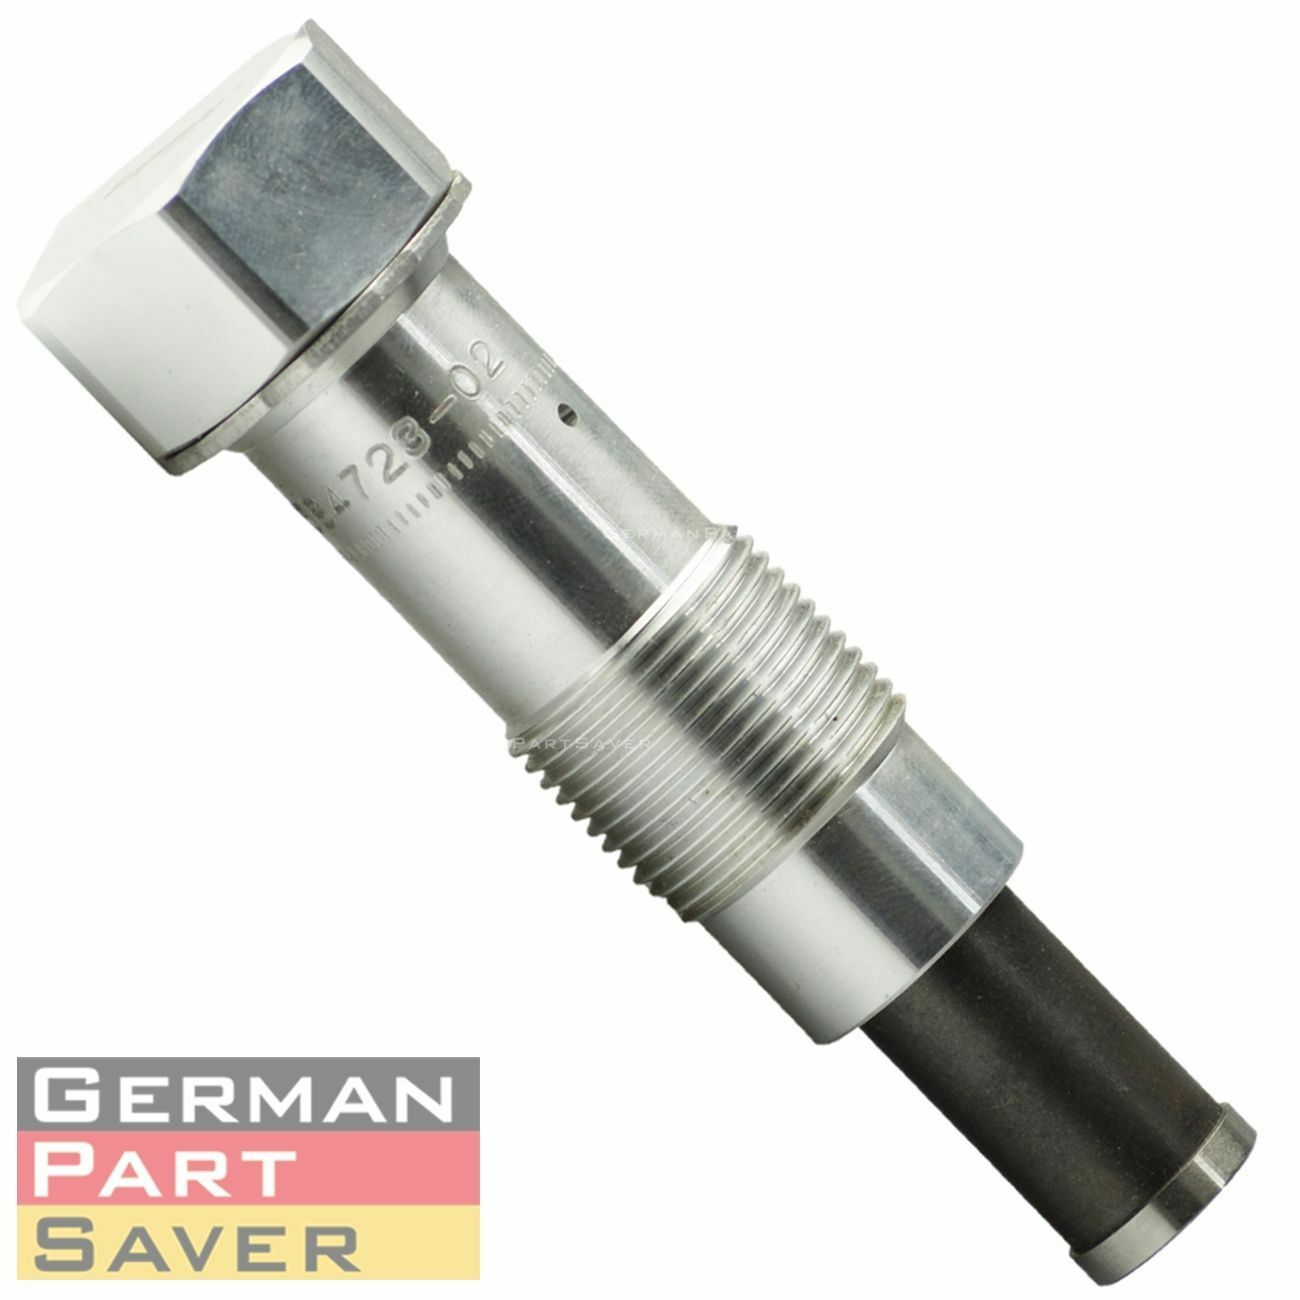 New Bmw E84 F01 F02 E83 E71 E70 E60 E90 Timing Chain Tensioner 325i 11317584723 1 Of 3free Shipping See More